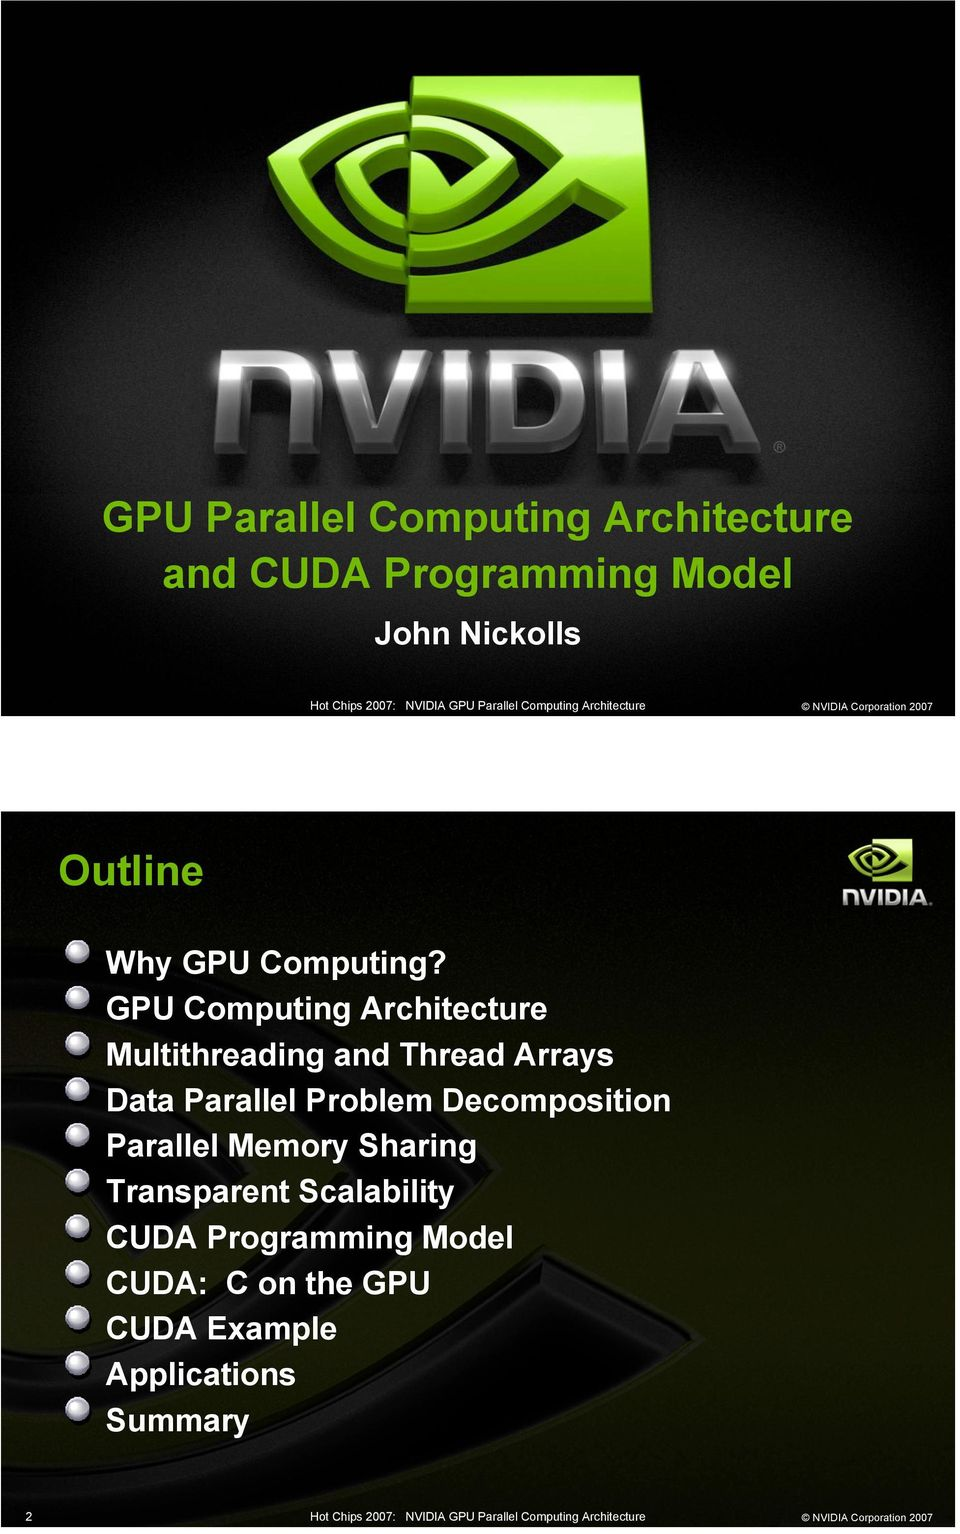 GPU Computing Architecture Multithreading and Arrays Data Parallel Problem